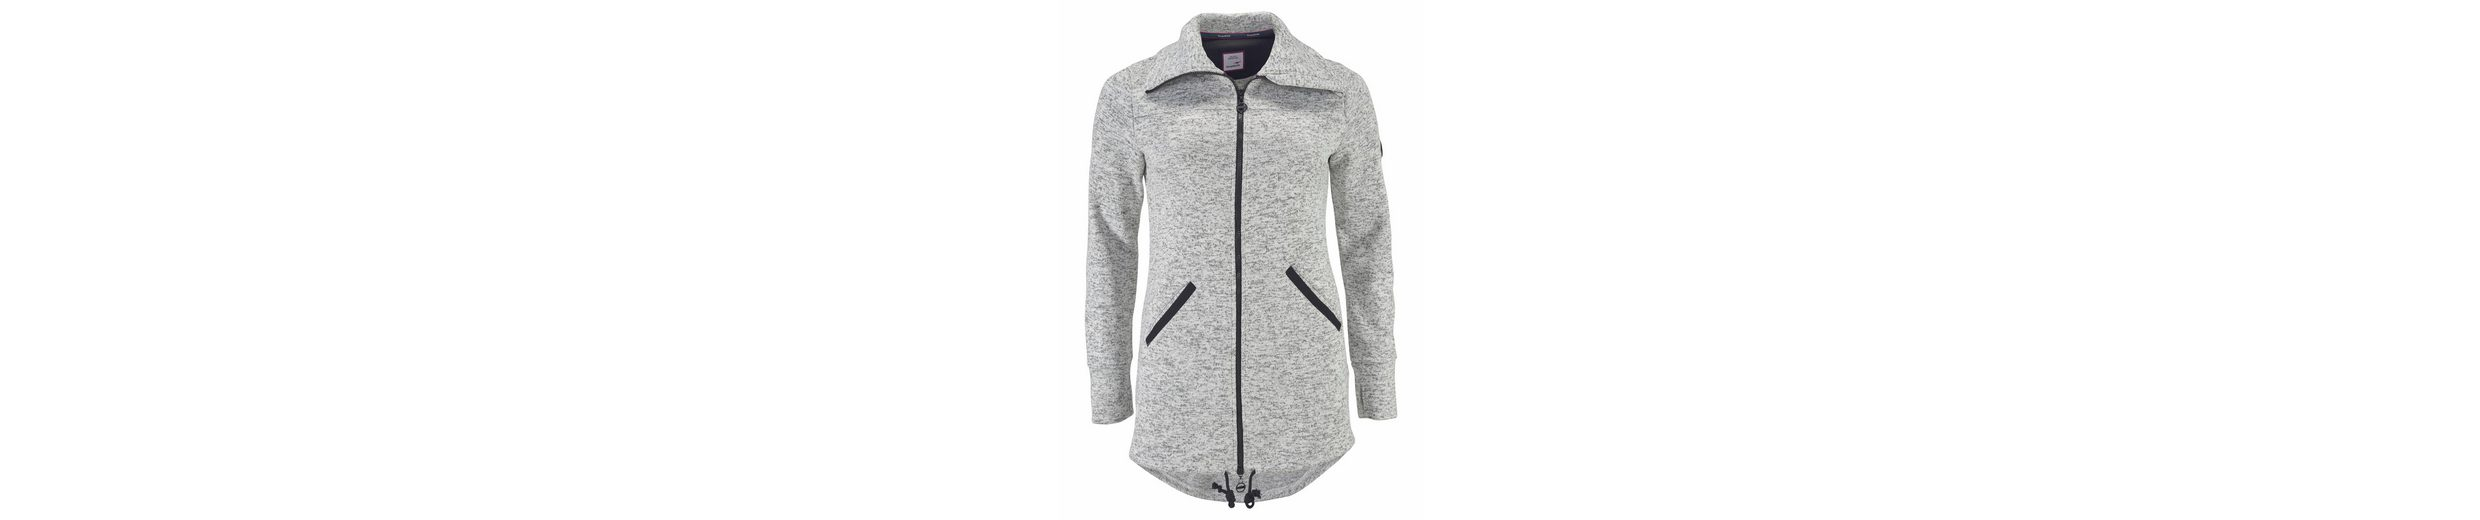 KangaROOS Strickfleecejacke, in trendy Longform